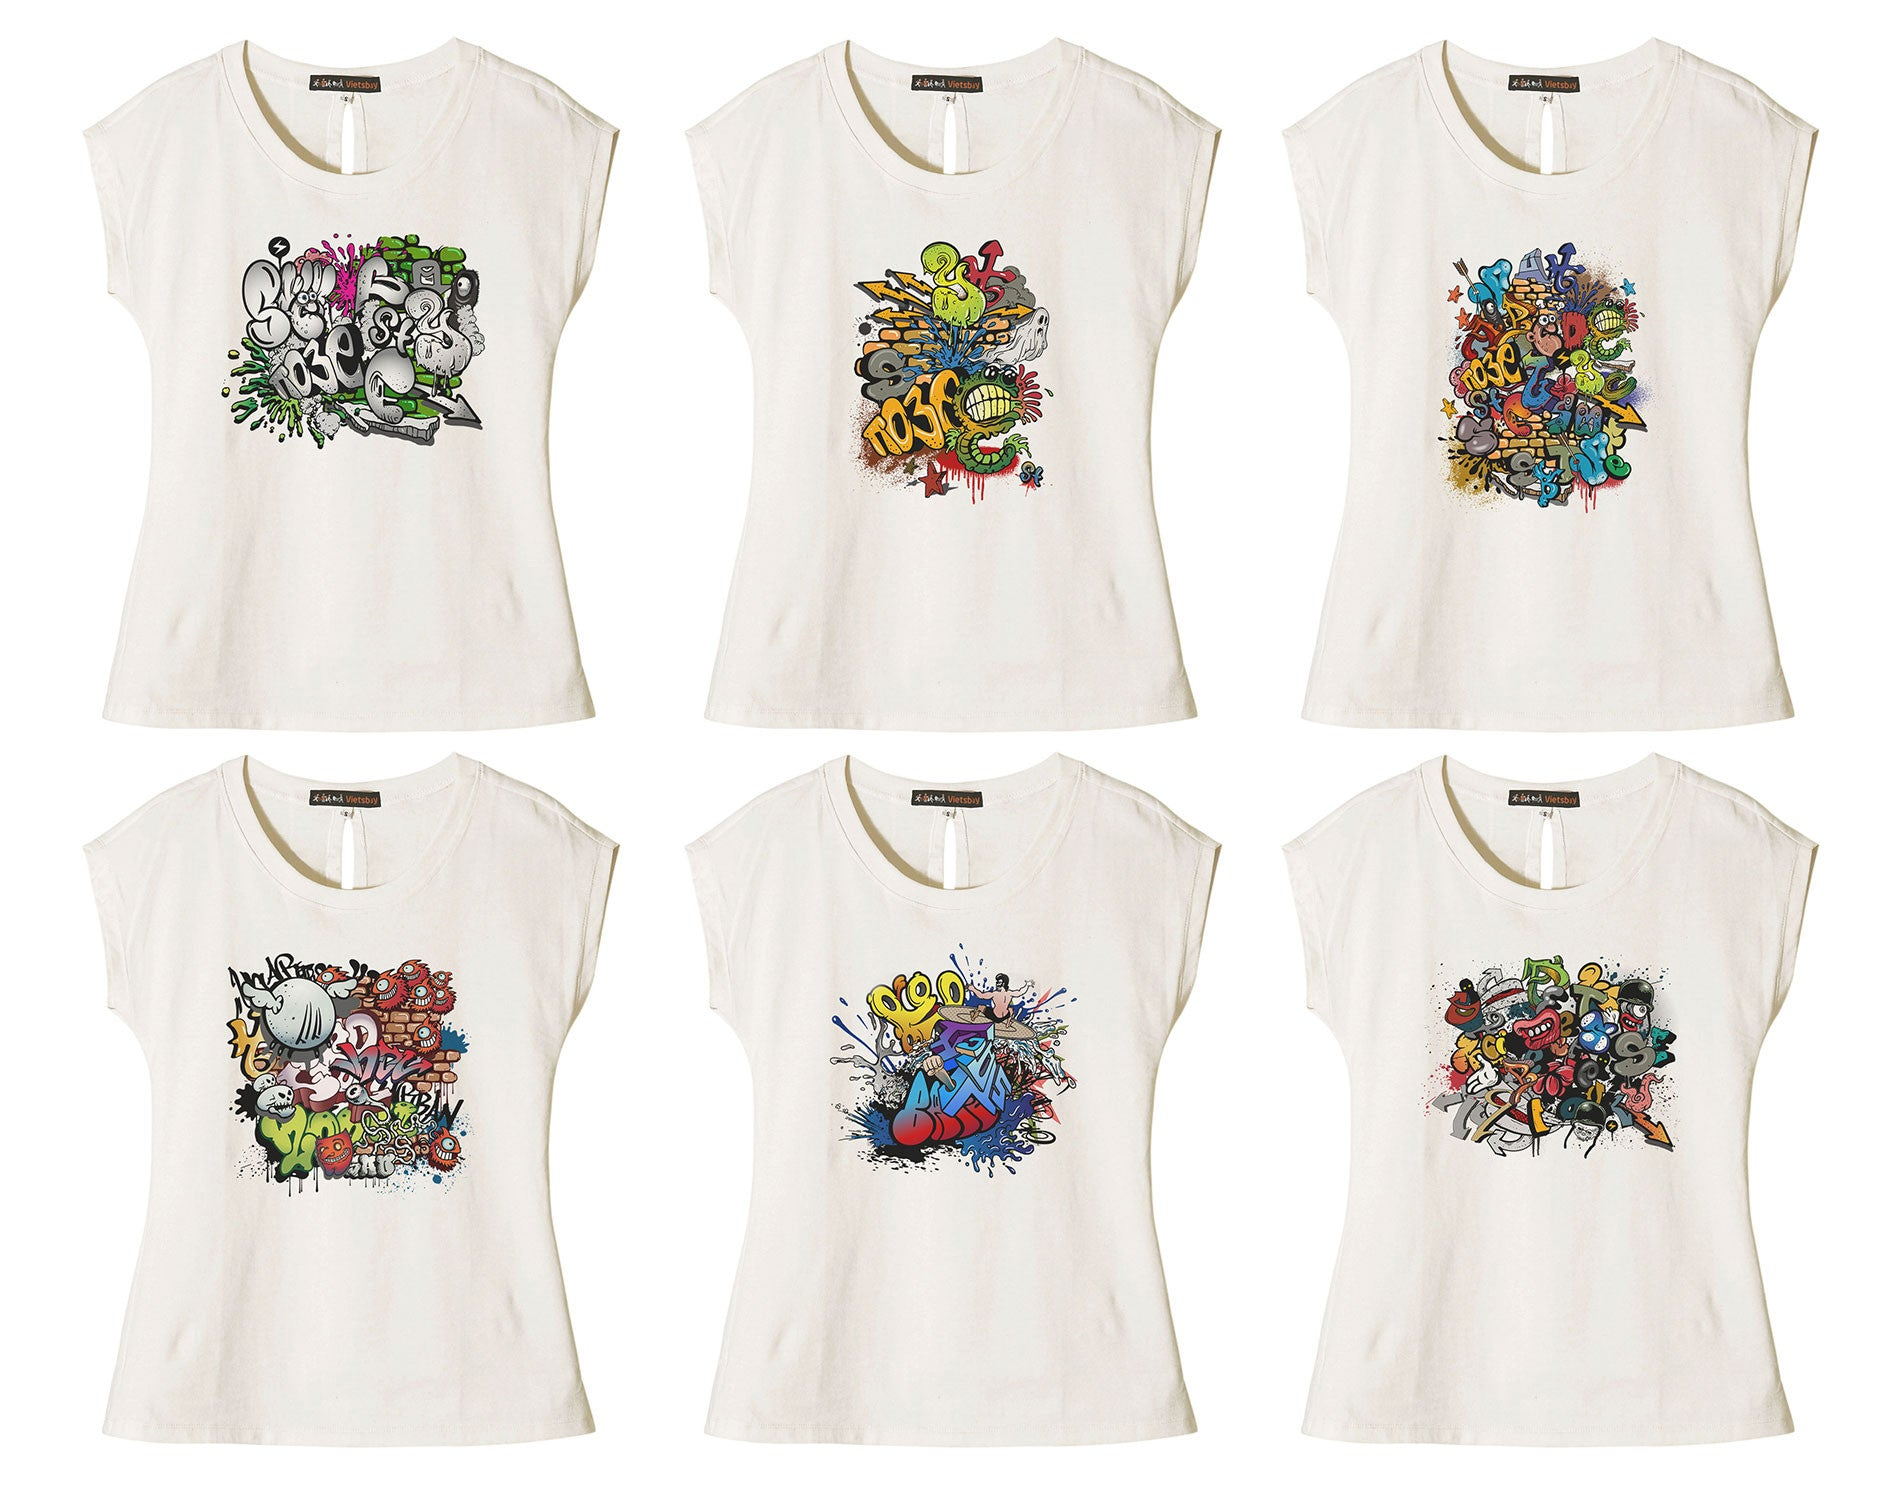 Women Graffiti Printed Cotton Short Sleeves T- Shirt WTS_02